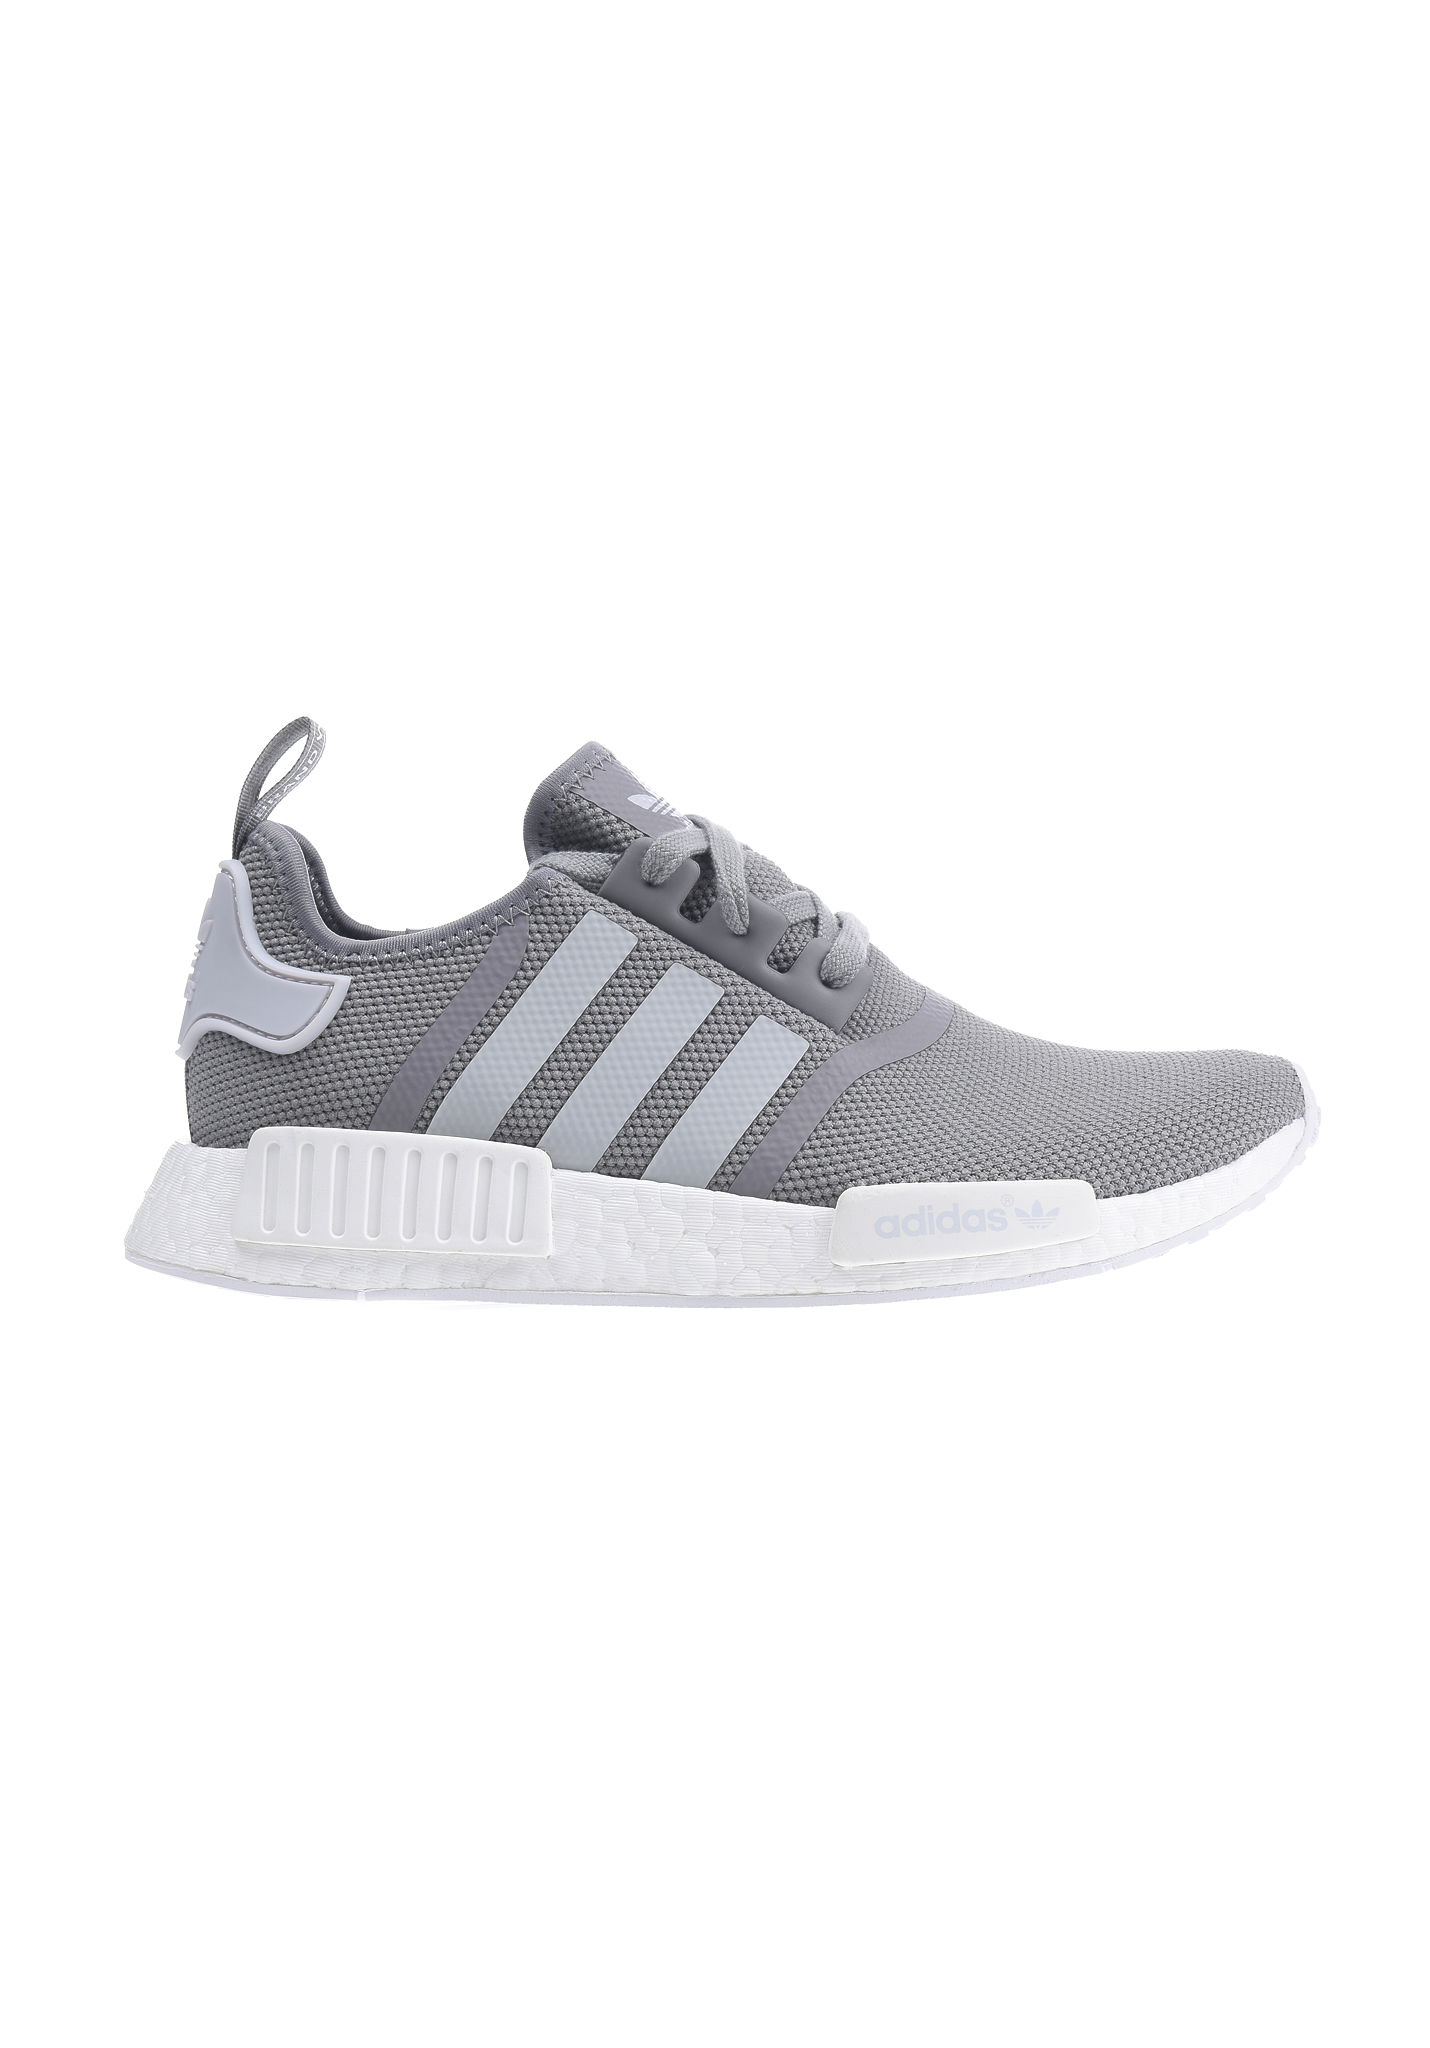 adidas nmd r1 black grey adidas shoes for men sports